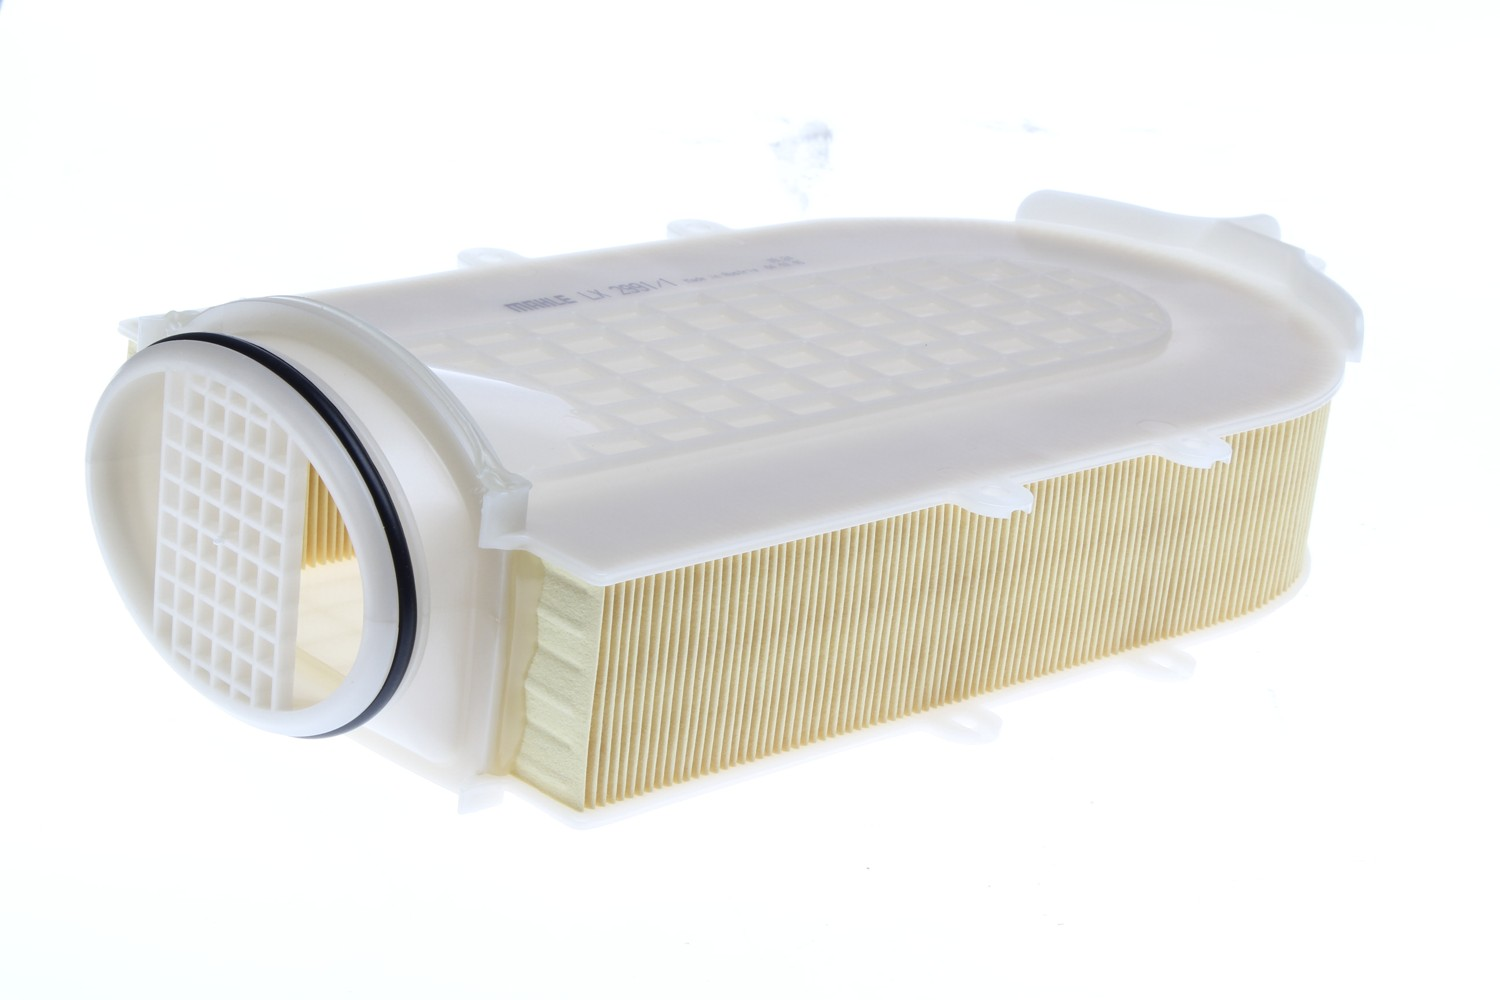 BMW X5 Mahle Air Filter LX2991//1 13717638566 New